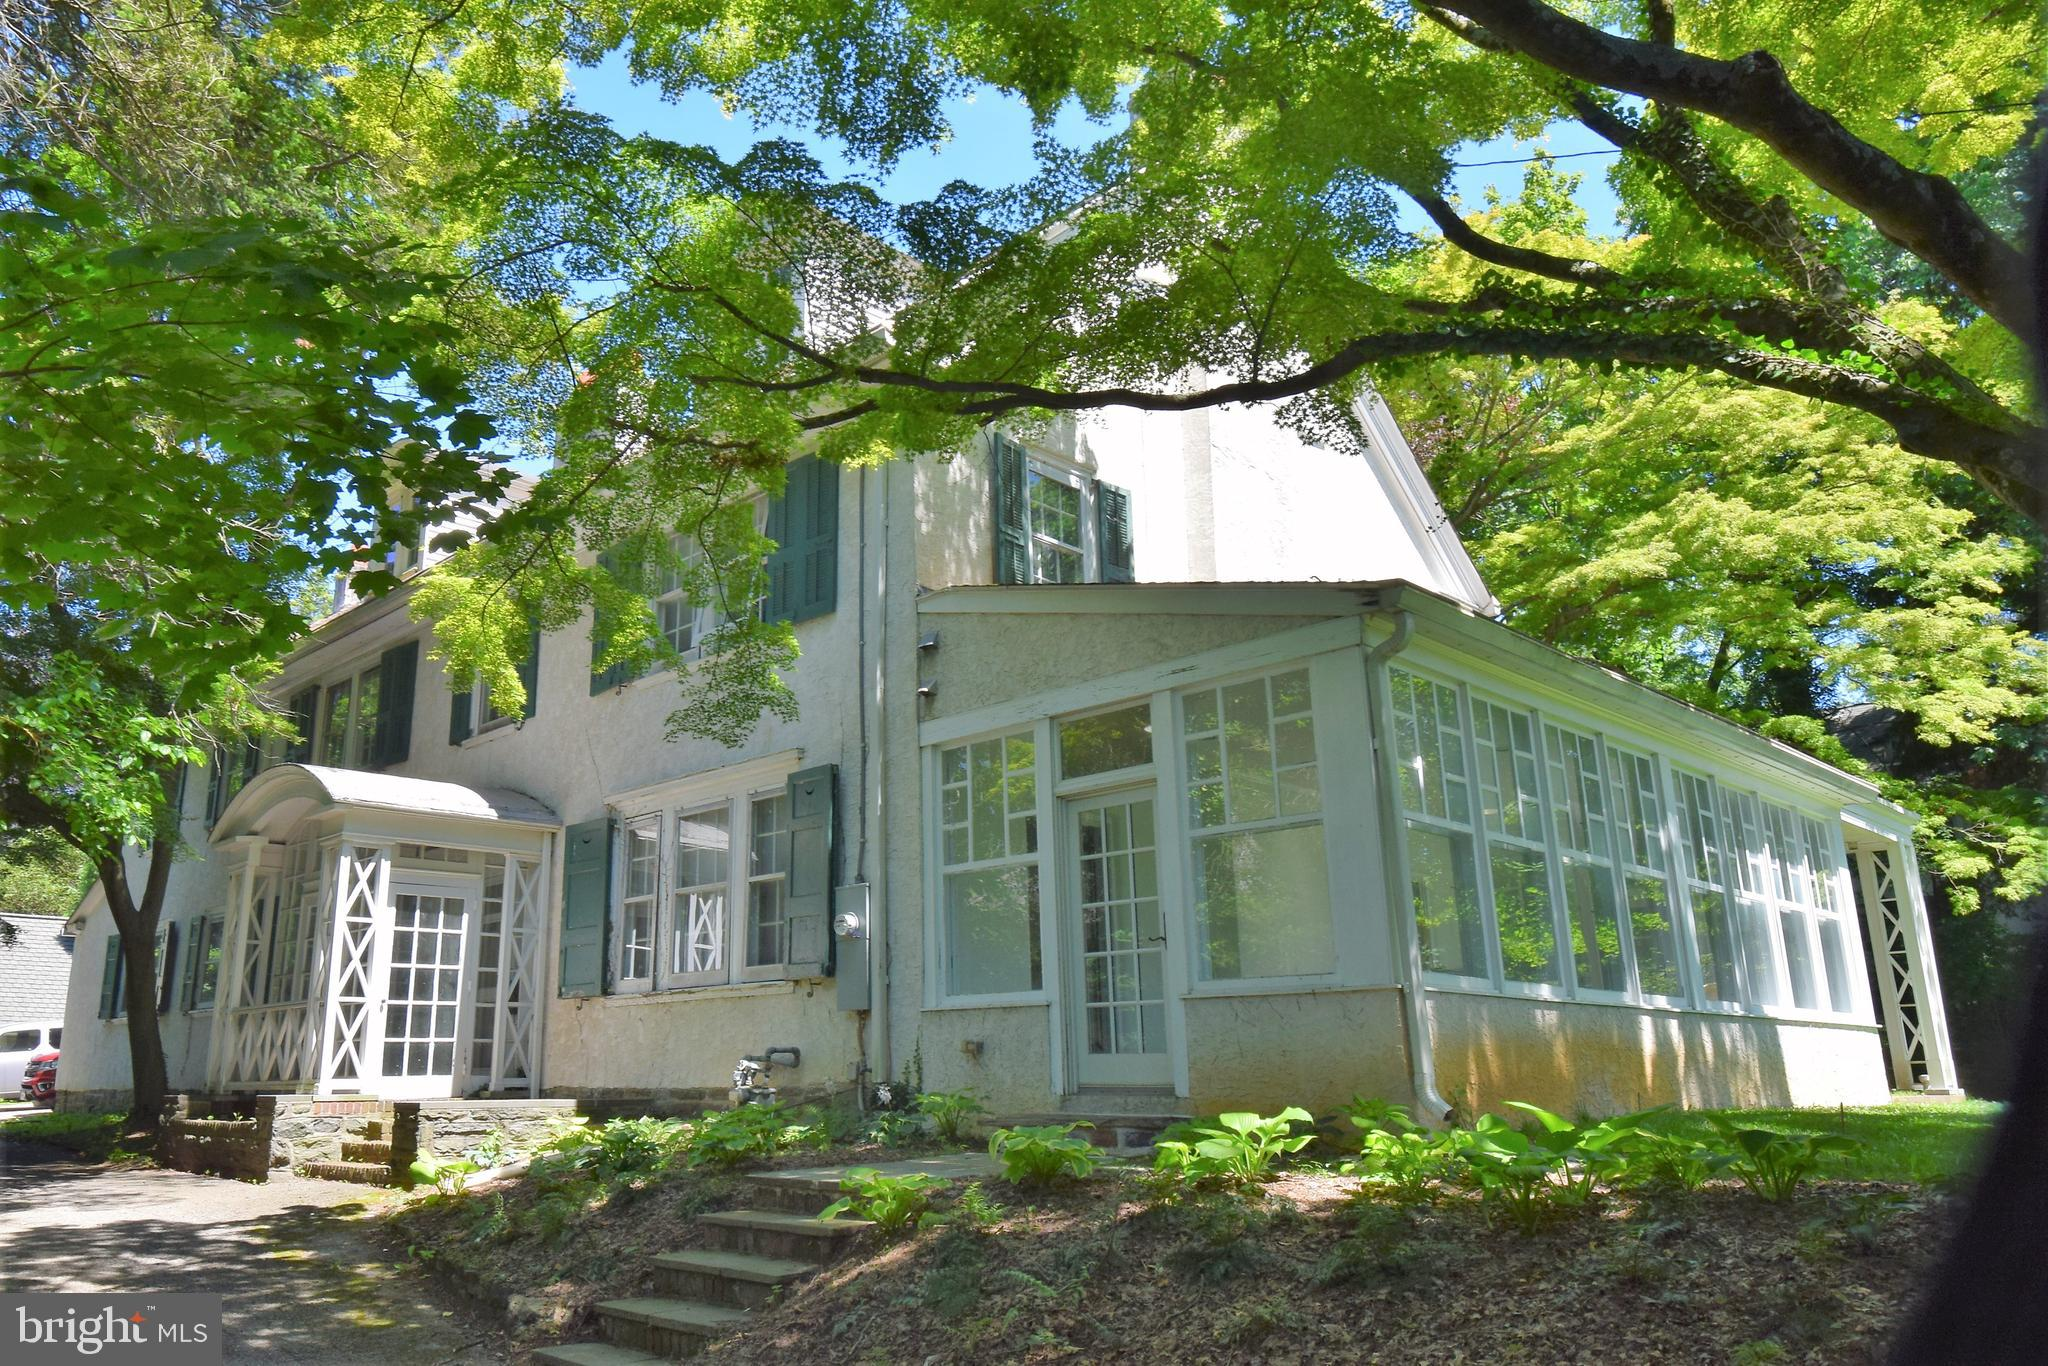 Can you say potential? Diamond in the Rough, Classic Main Line Colonial w/ 4,634 SqFt, 7 BedRms, 4.5 Baths, & 4 Fireplaces. Wide 3-story, front staircase highlights the charm & craftsmanship of a home built in 1890. Updated w/ gas heat and central air, Sun Rm w/ radiant heated floors was added in 2003. Ideally located on a half-acre lot across from the Baldwin school playing fields. Private driveway leads to detached 2-Car garage that also has a basement & BathRm (no longer working). Listed more than $350,000 under Zillow's estimate, see this value with a vision.